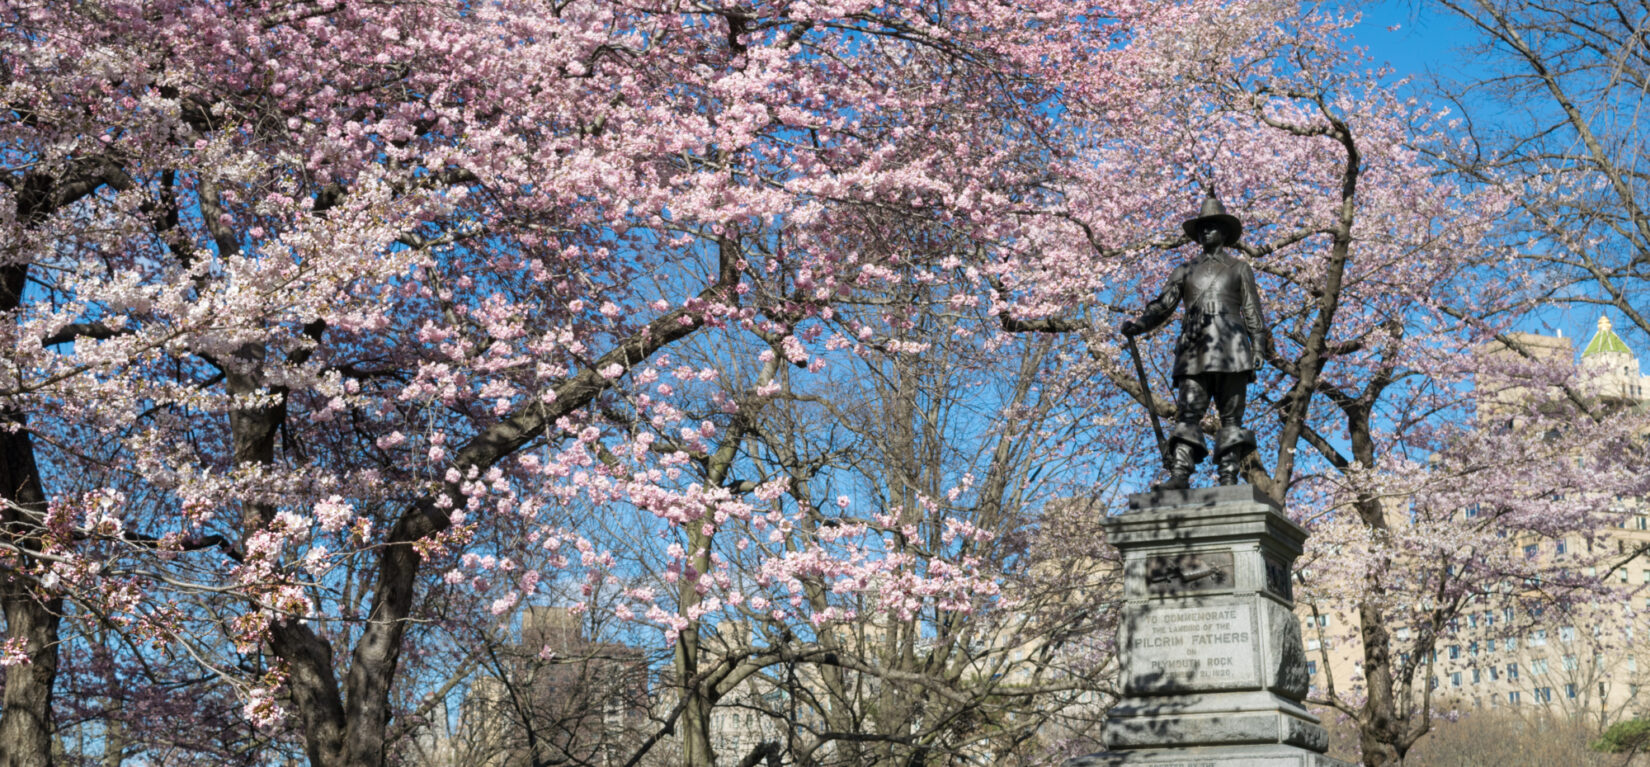 The Pilgrim statue atop its Hill, surrounded by cherry blossoms.